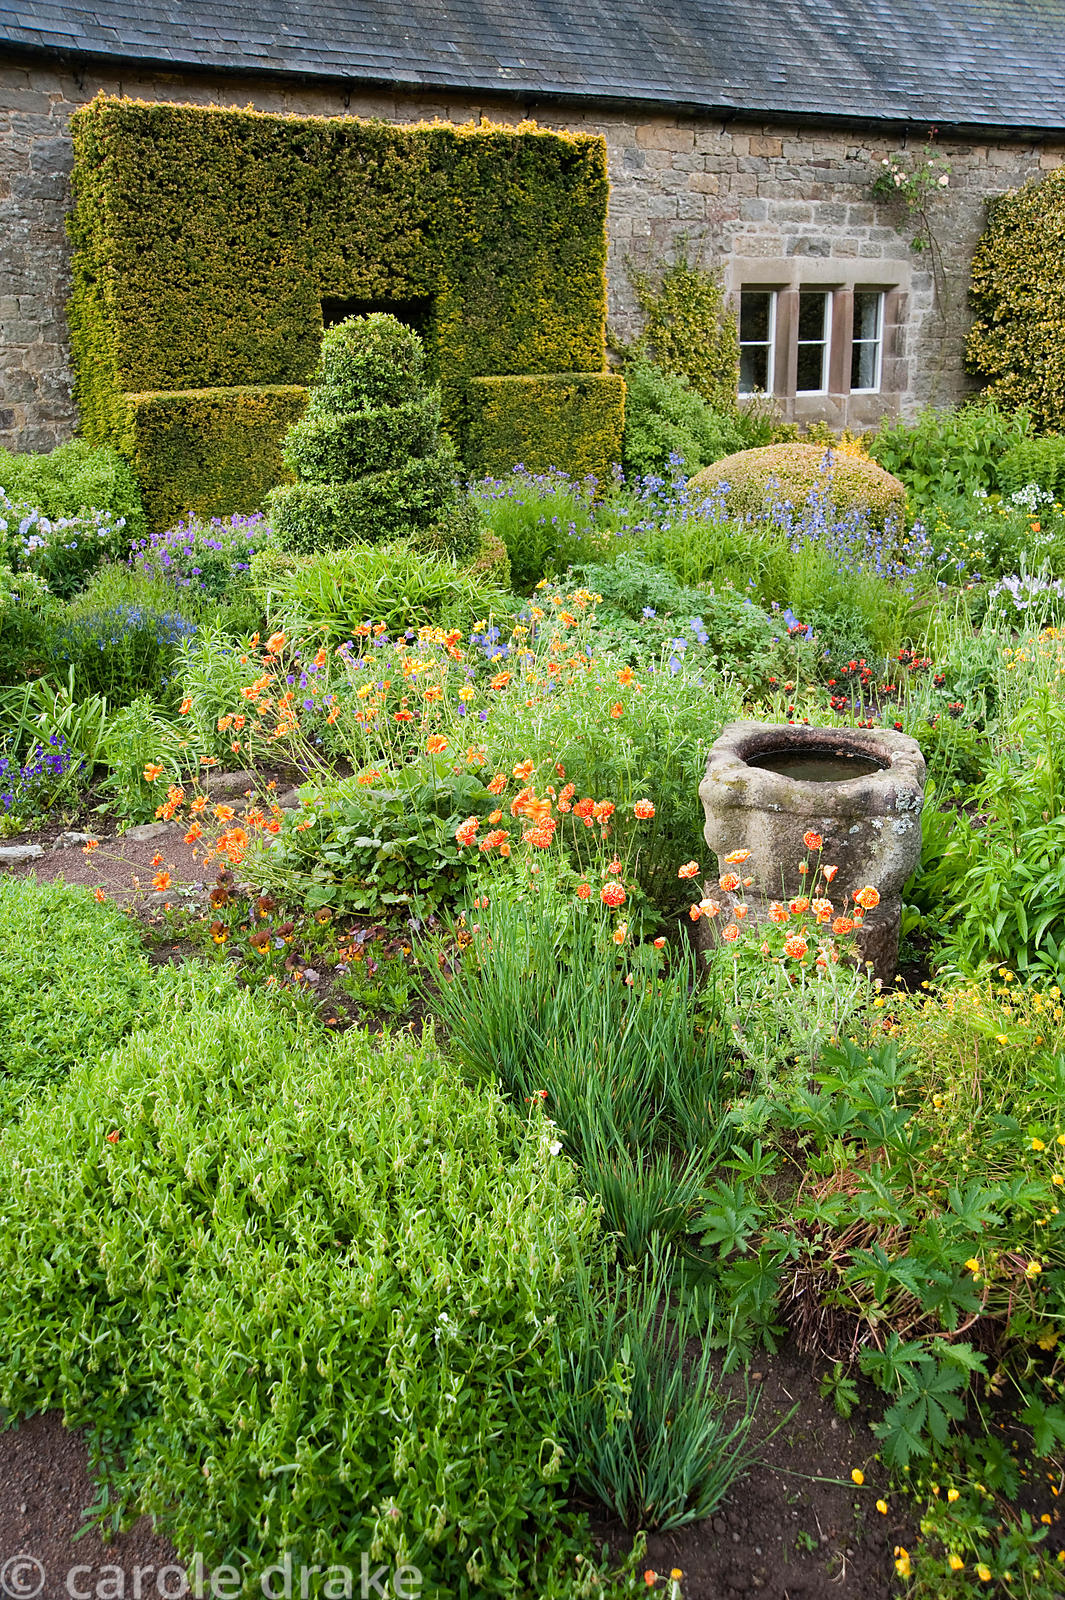 The Flower Garden features strong blocks of box and yew that frame cottage garden plants and flowers, here including poppies,...